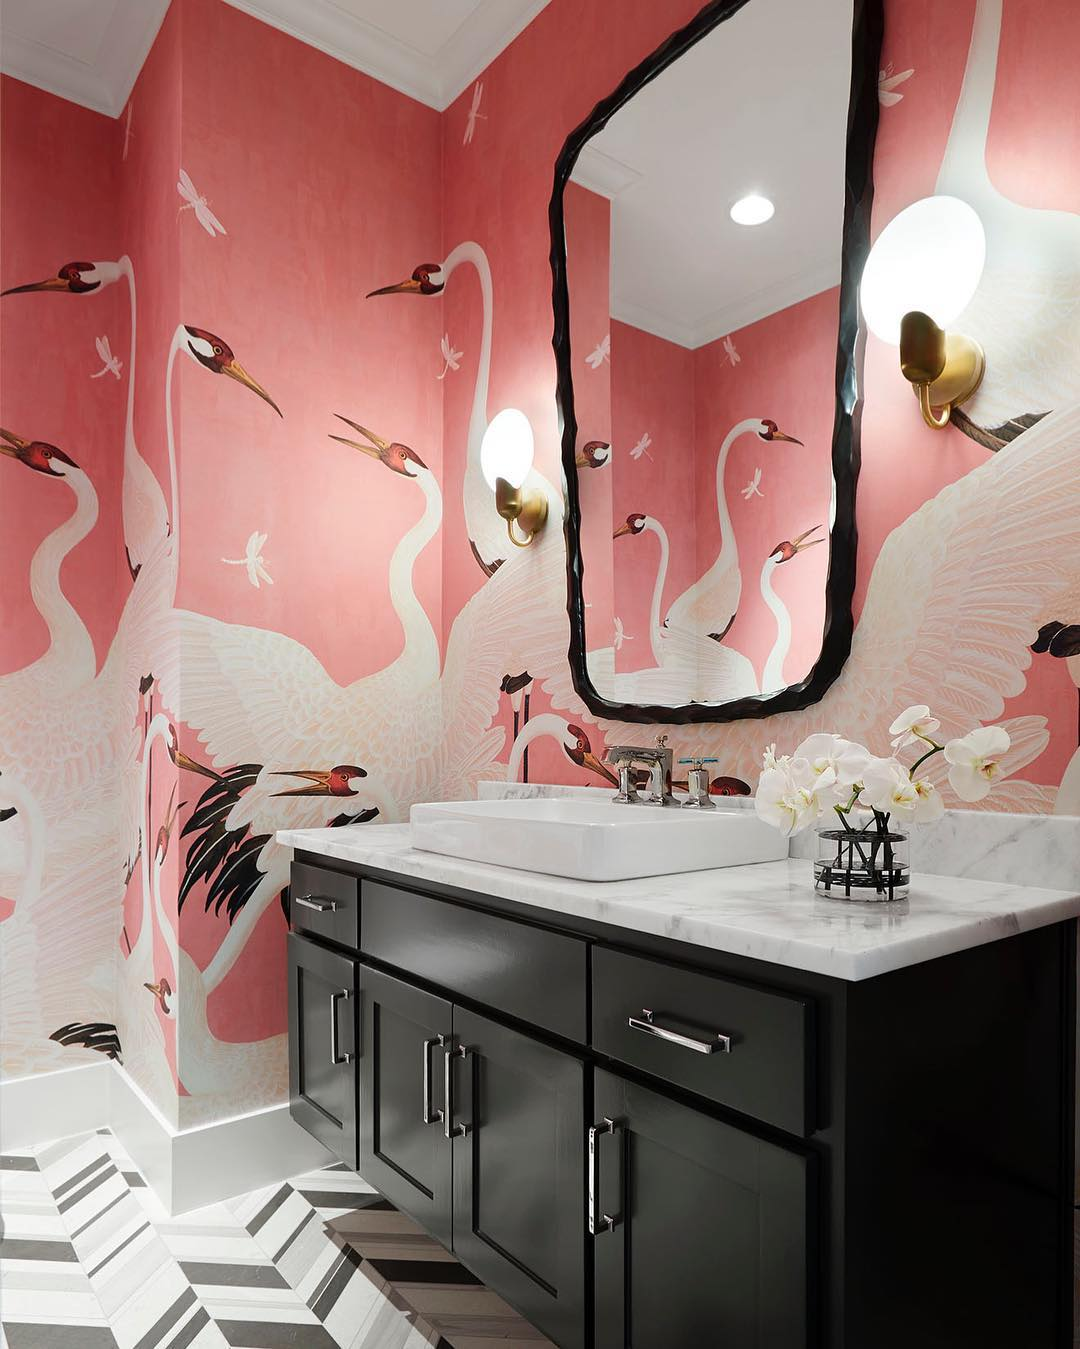 Bathroom with large scale coral wallpaper featuring white cranes and dragonflies, by Tracy Hardenburg Design (@tracyhardenburgdesigns) on Instagram